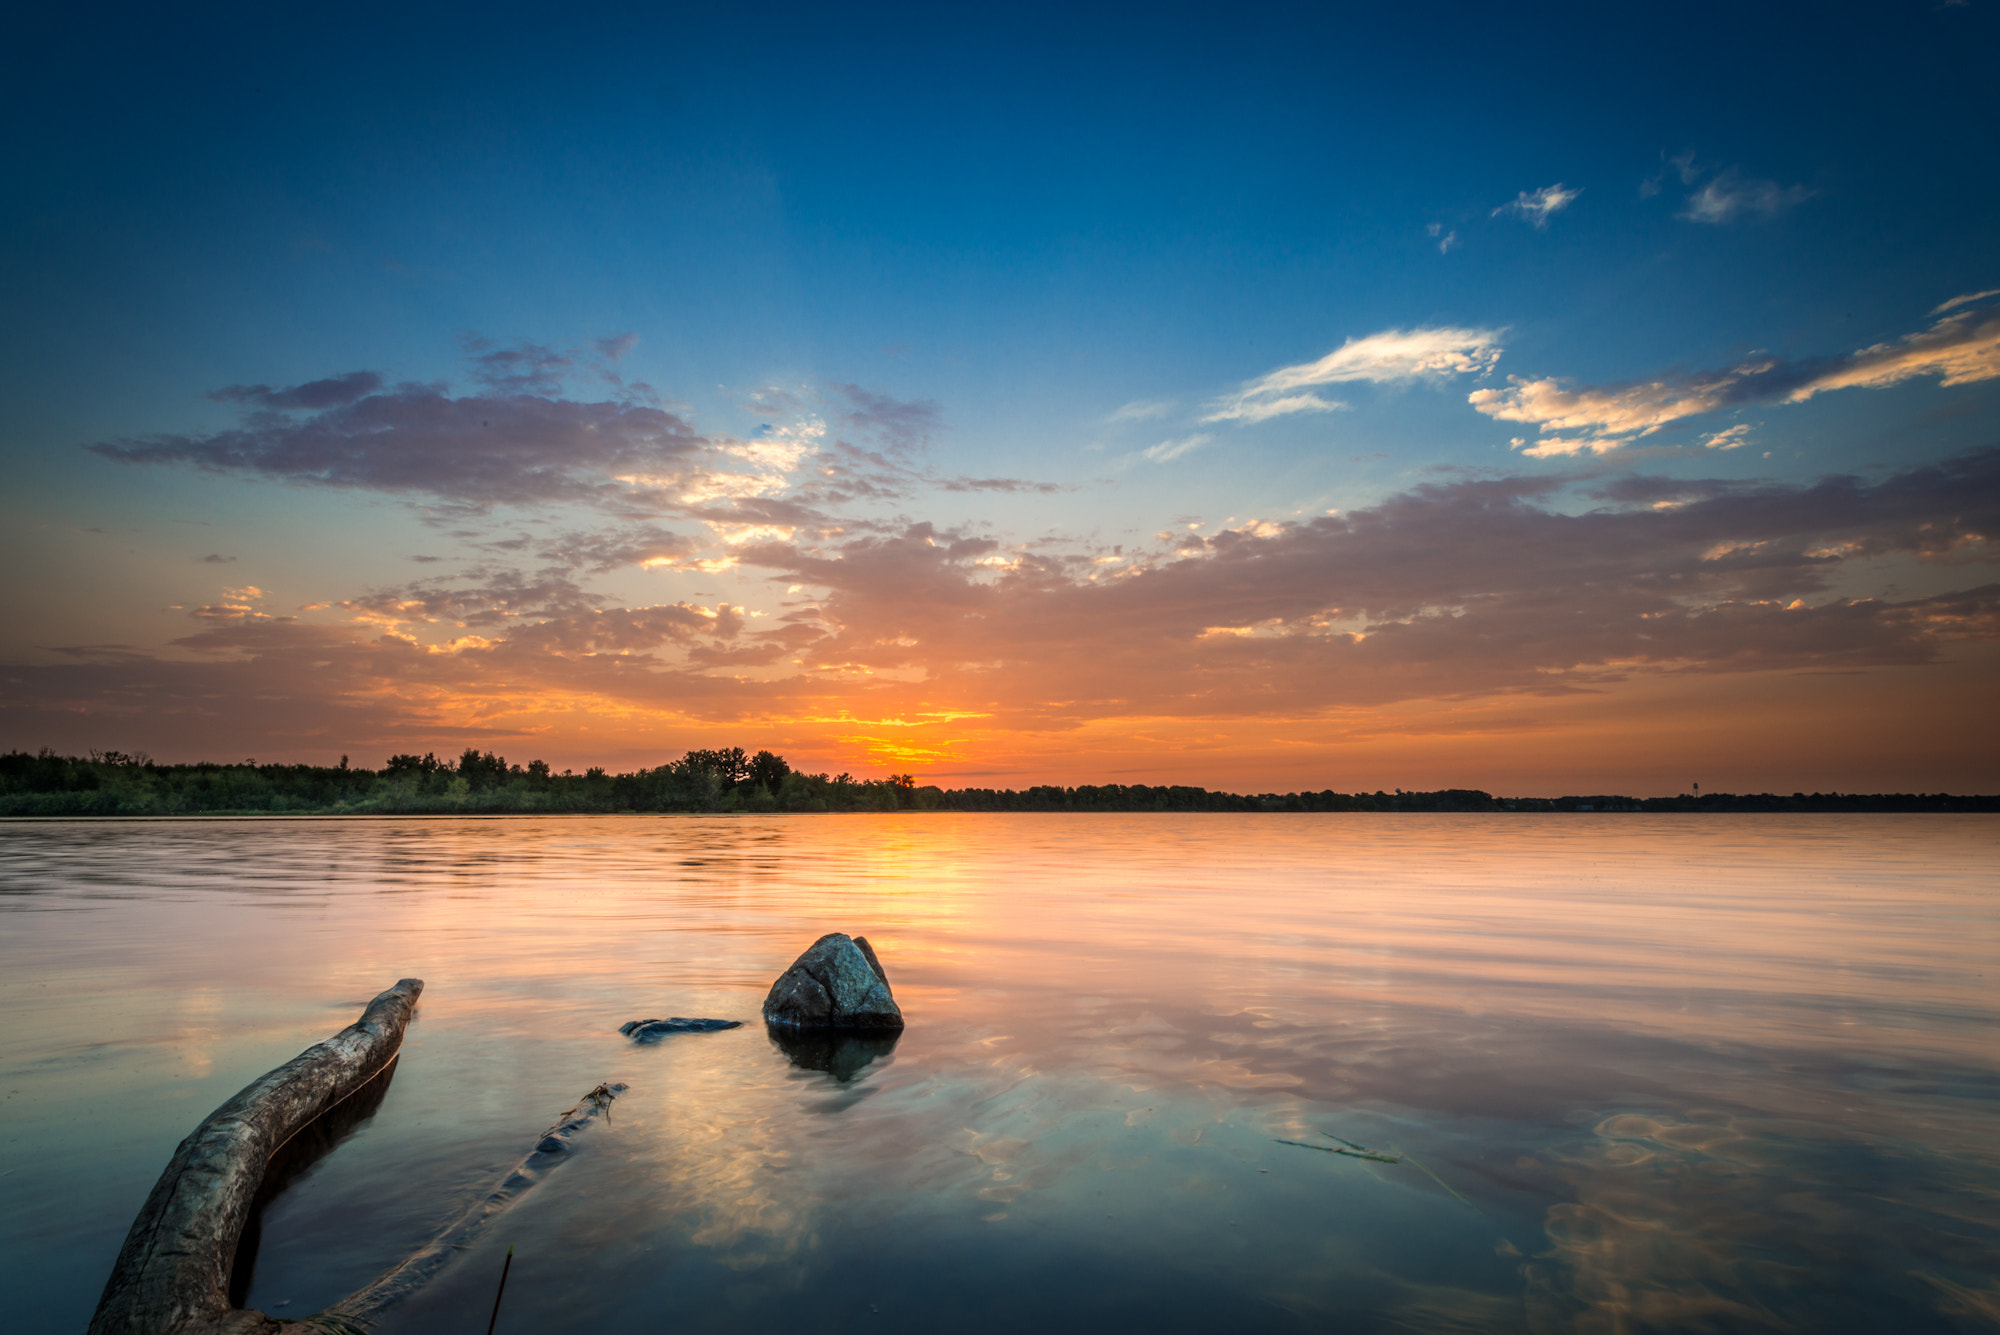 Photograph Woke Up This Morning by Ryan Koch on 500px